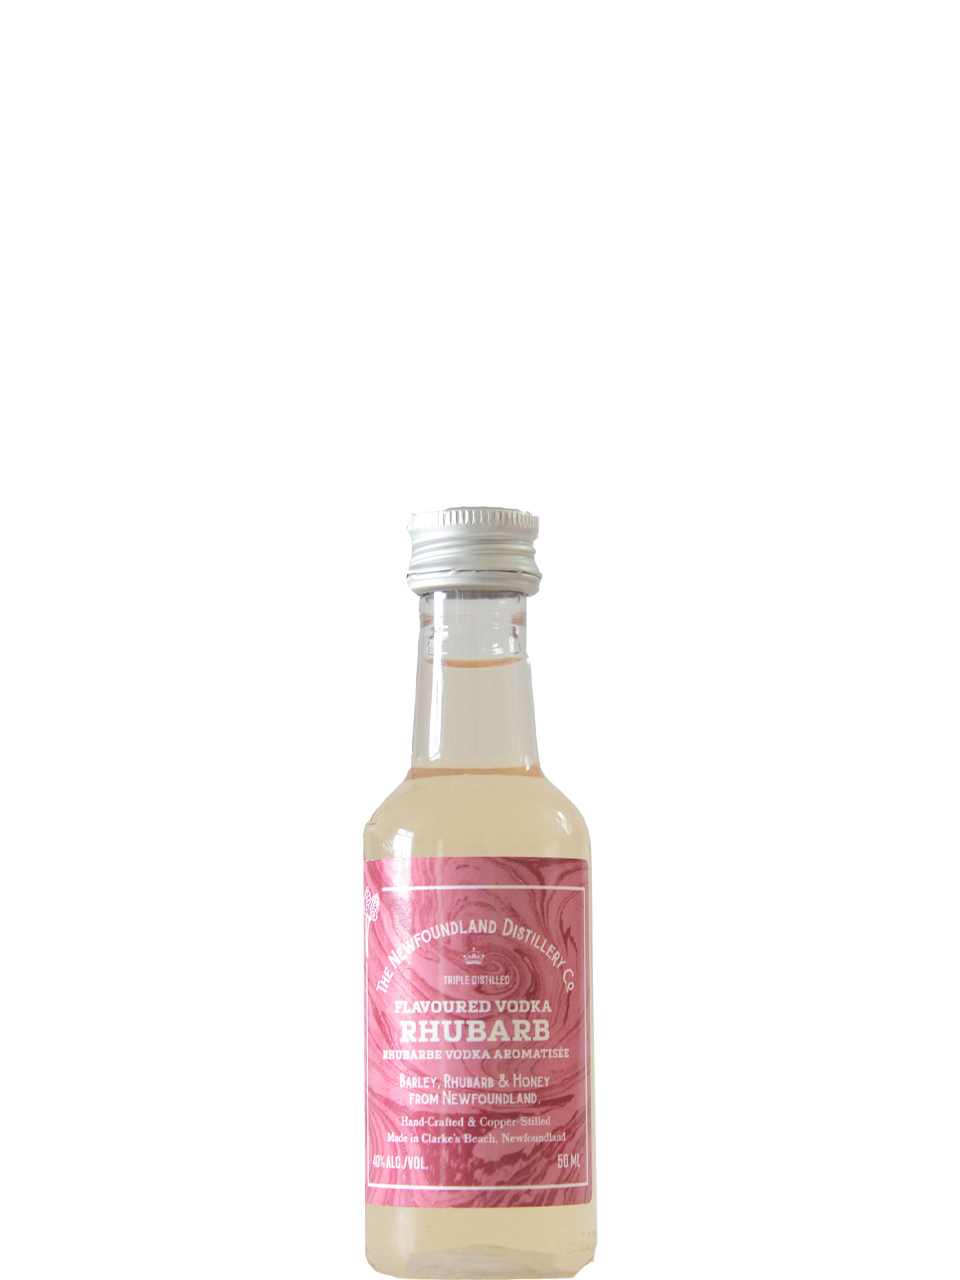 The Newfoundland Distillery Co. Rhubarb Vodka